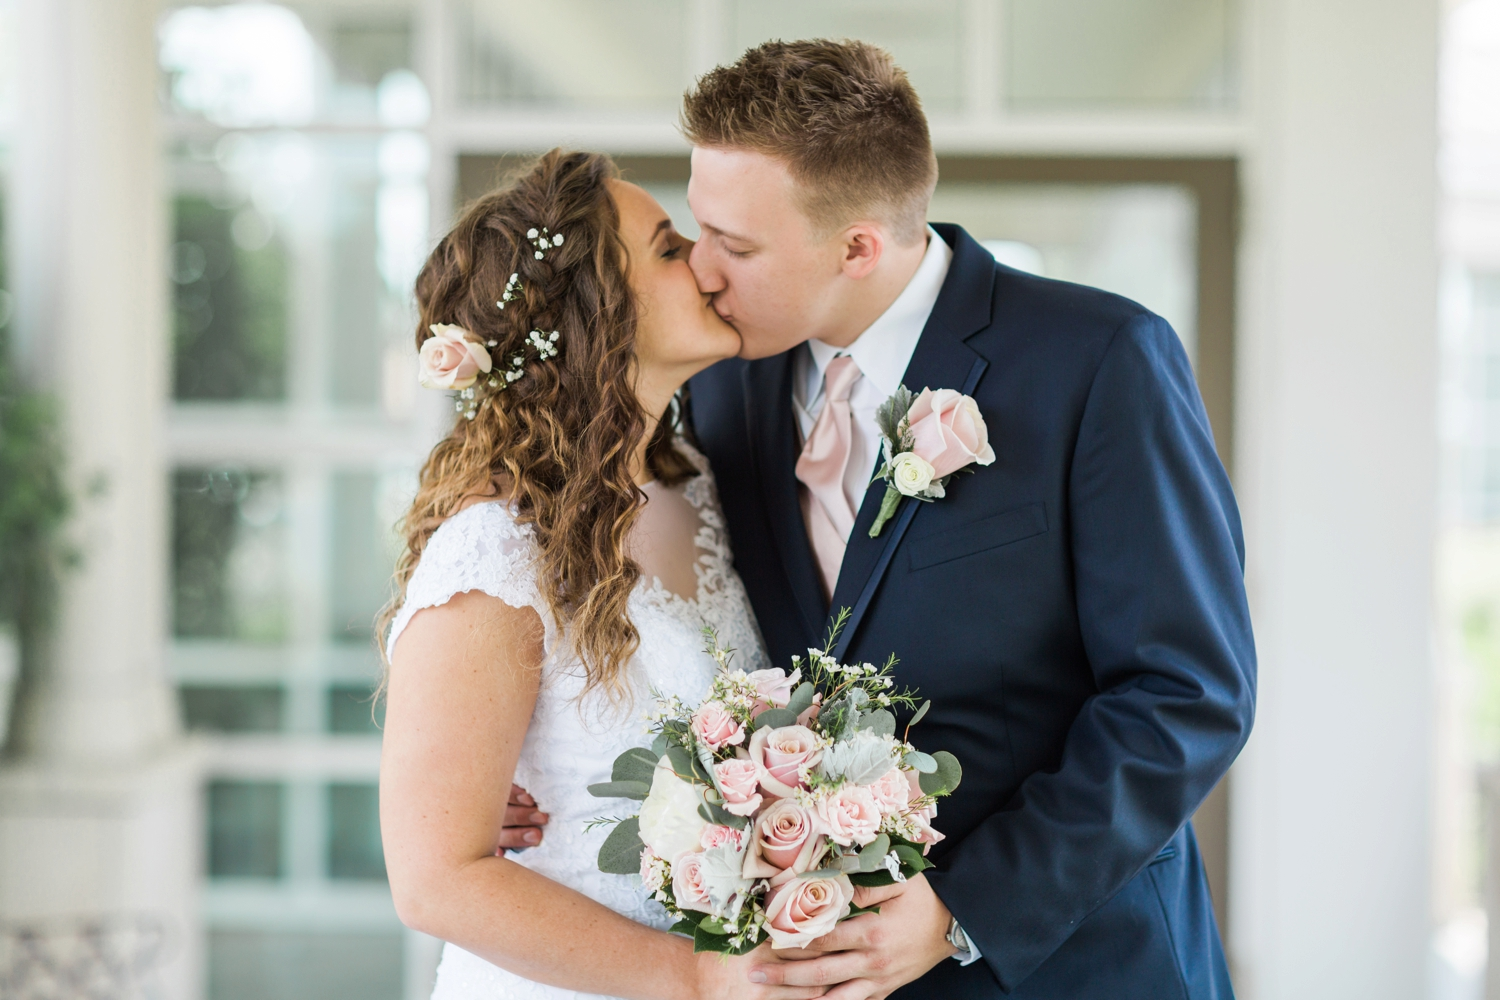 Community_Life_Center_Indianapolis_Indiana_Wedding_Photographer_Chloe_Luka_Photography_6875.jpg